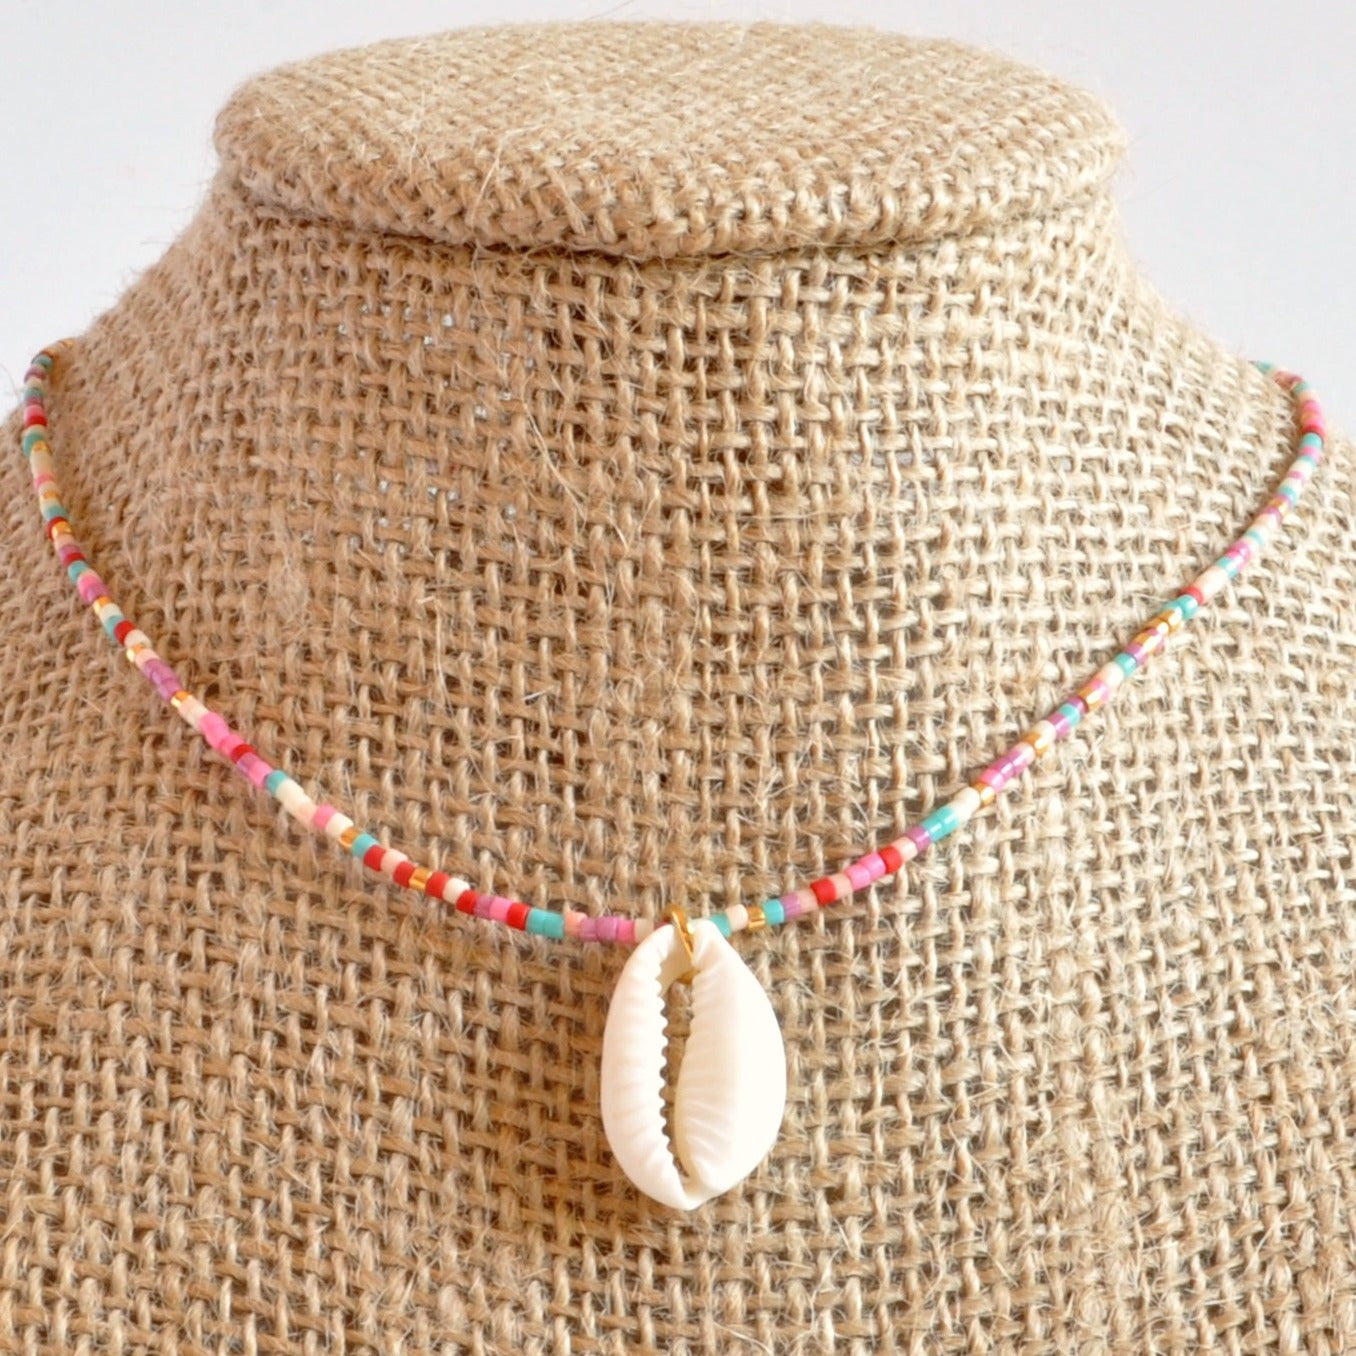 Libby & Smee Seashell Choker Necklace in Cotton Candy Mix: pink, purple, peach gold, ivory, on mannequin